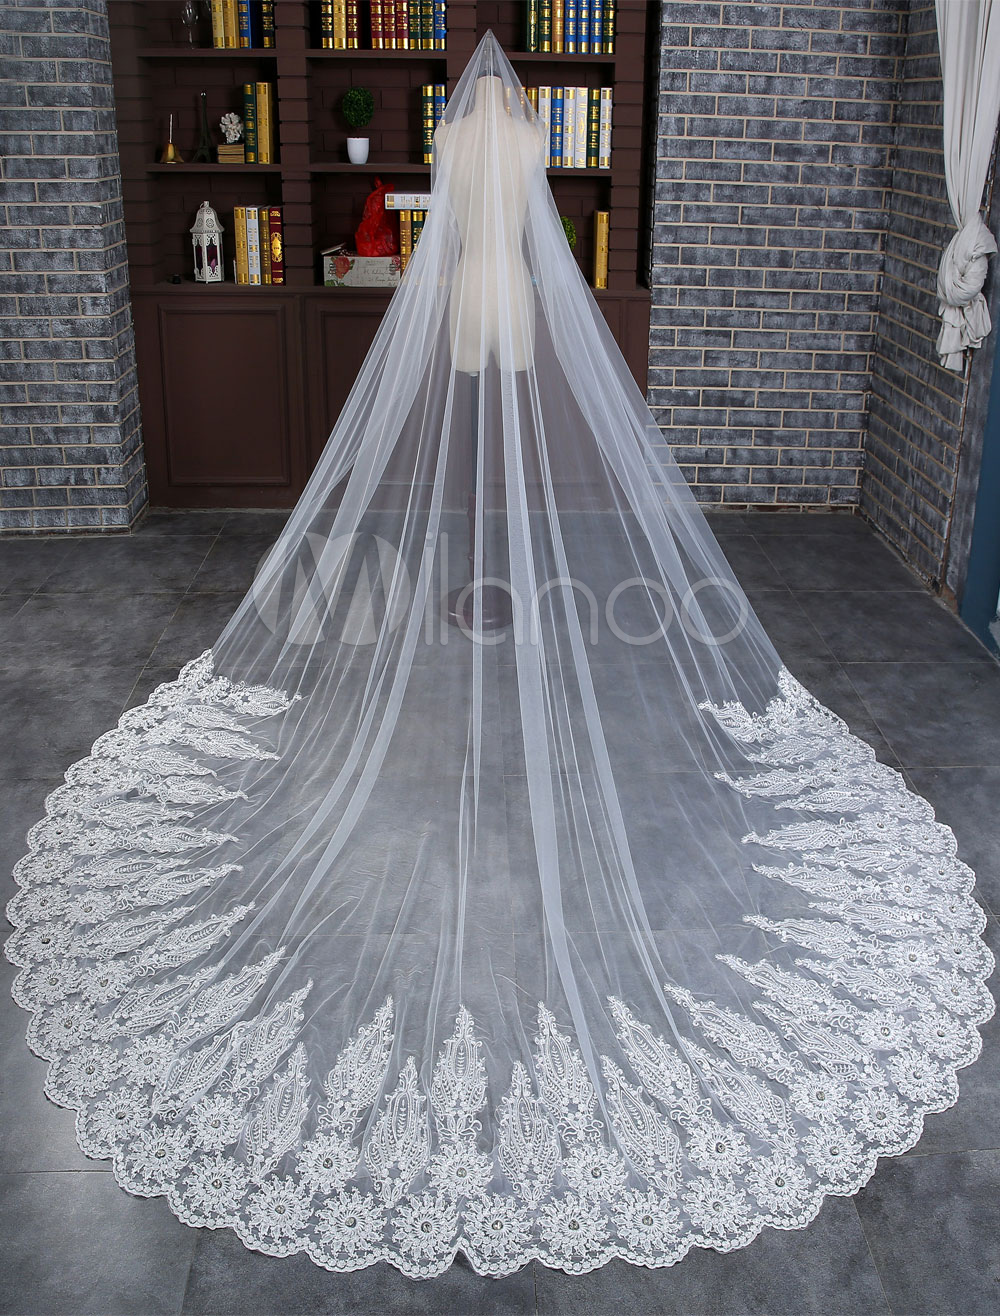 Cathedral Wedding Veil Lace Applique Rhinestones Tulle 1-Tier 400cm Bridal Veil With Comb